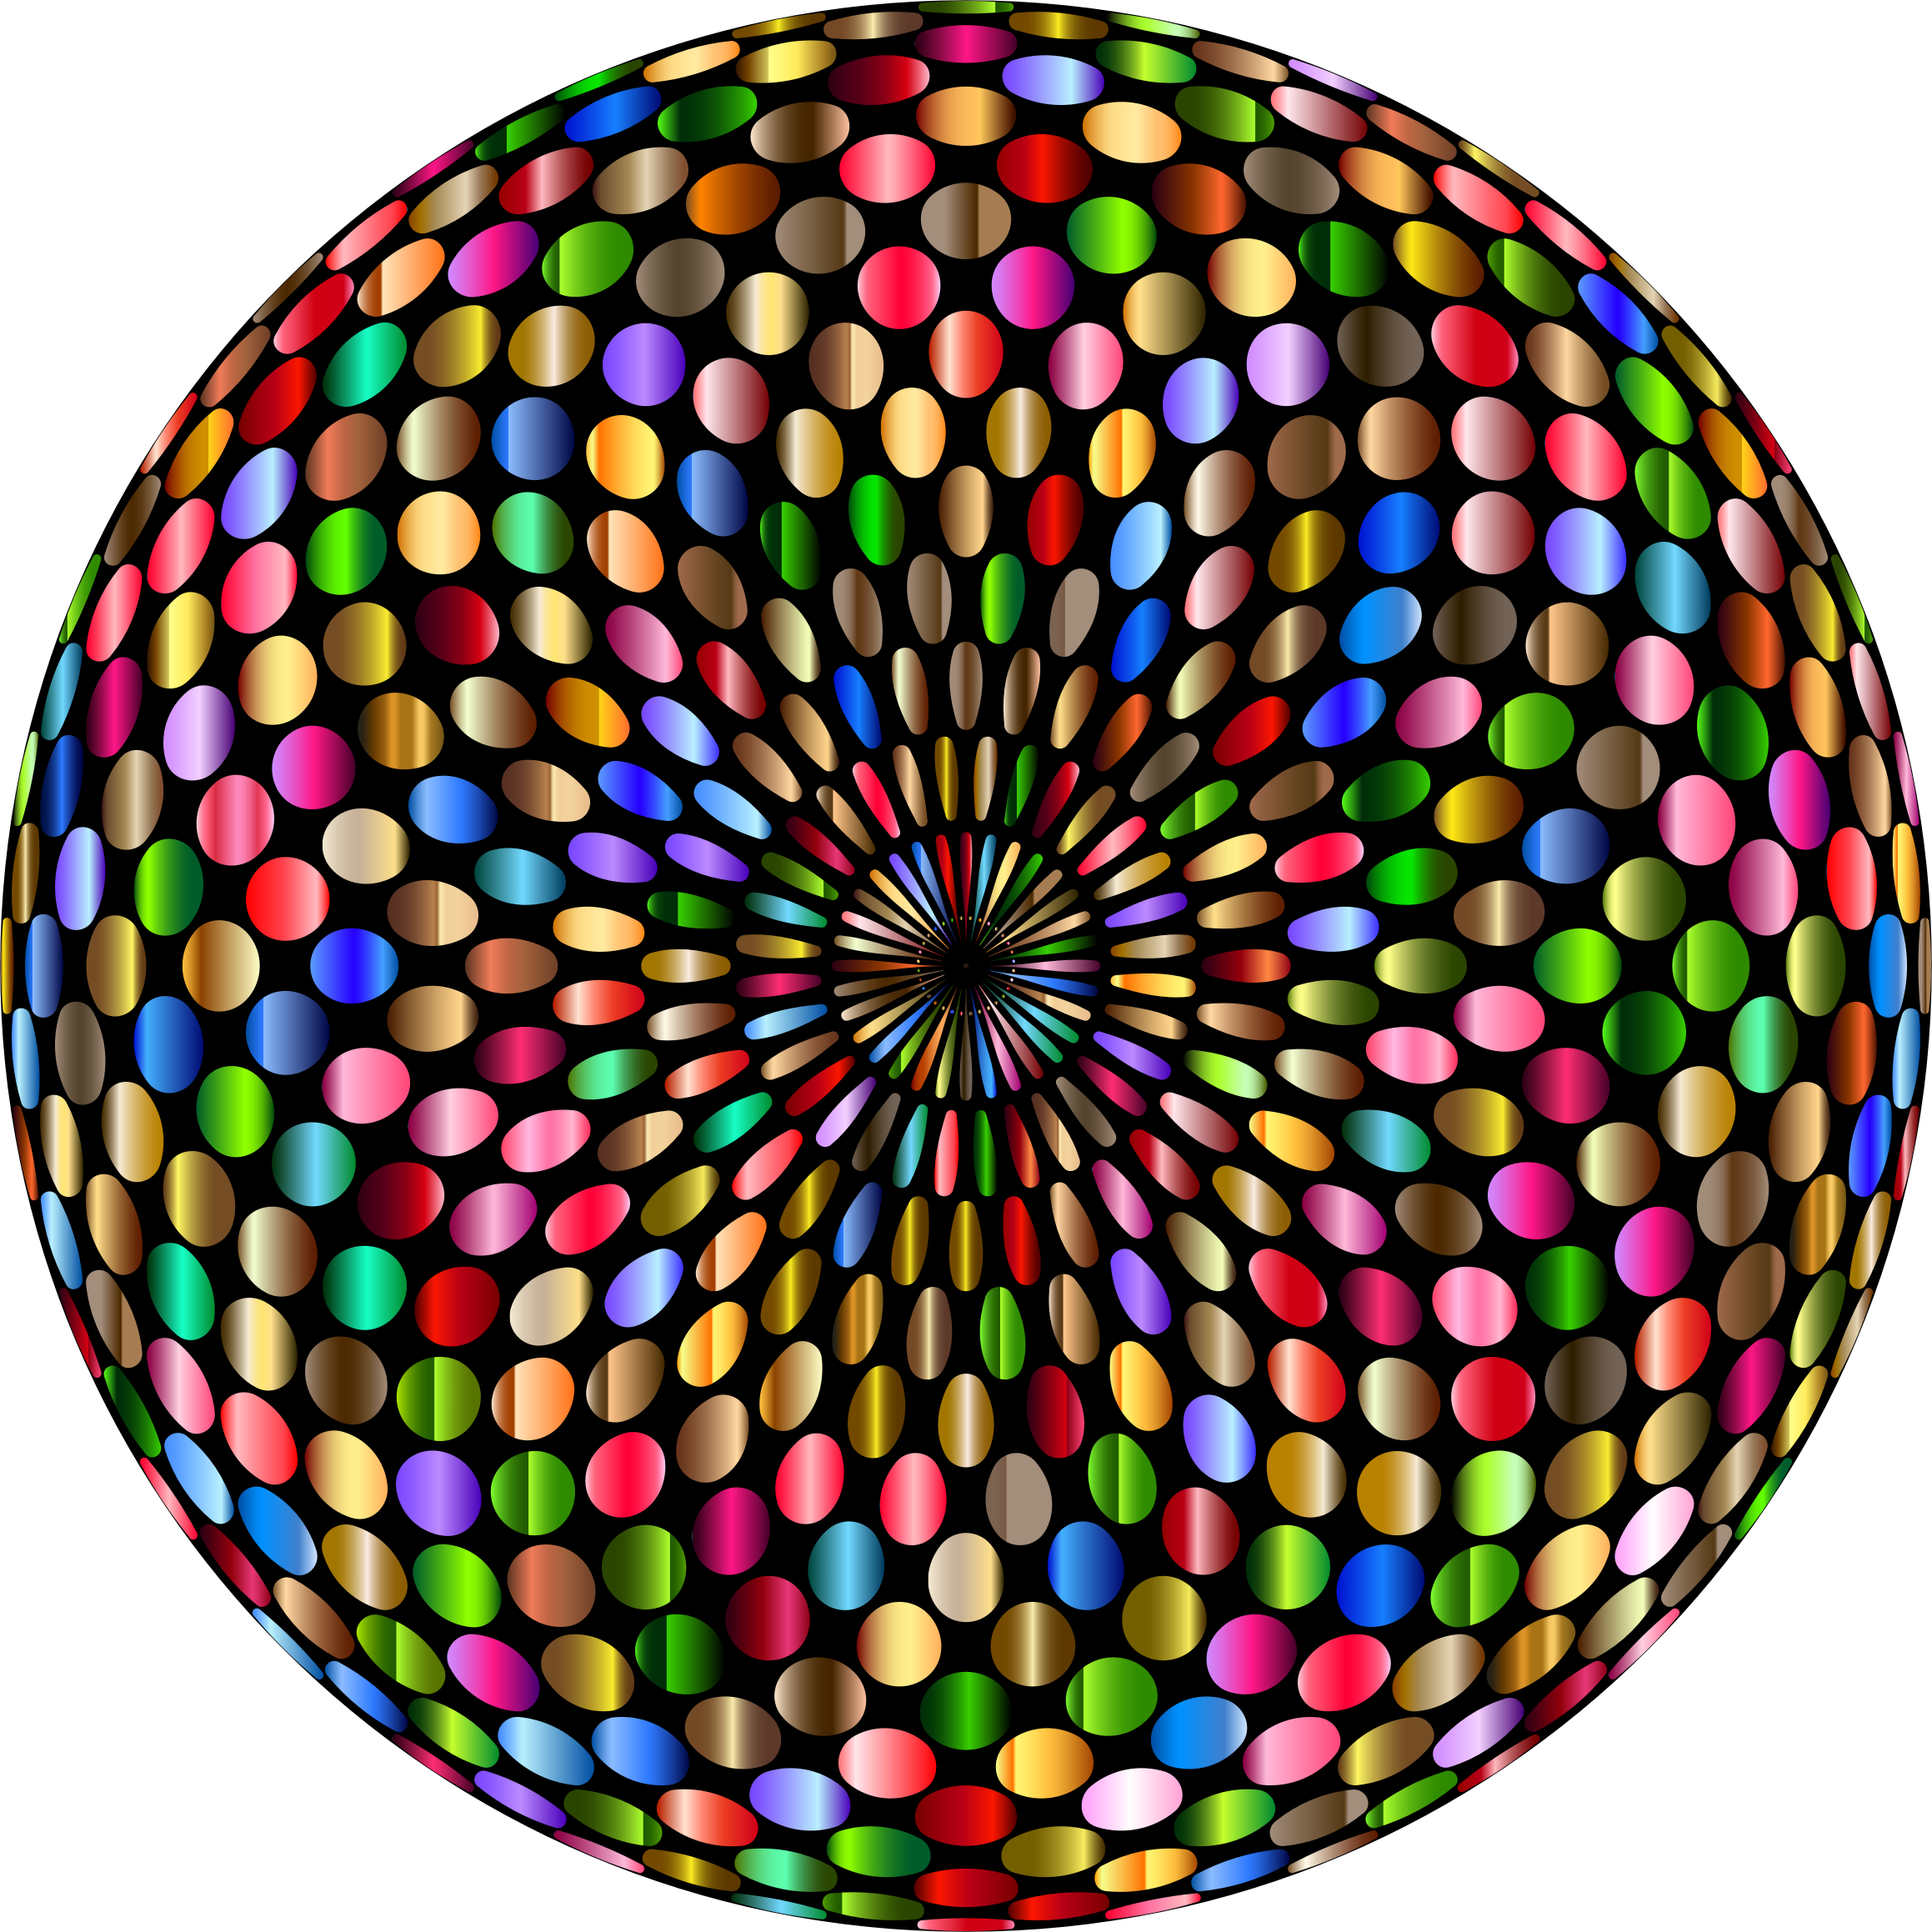 Disco clipart kids disco. Psychedelic chromatic ball big